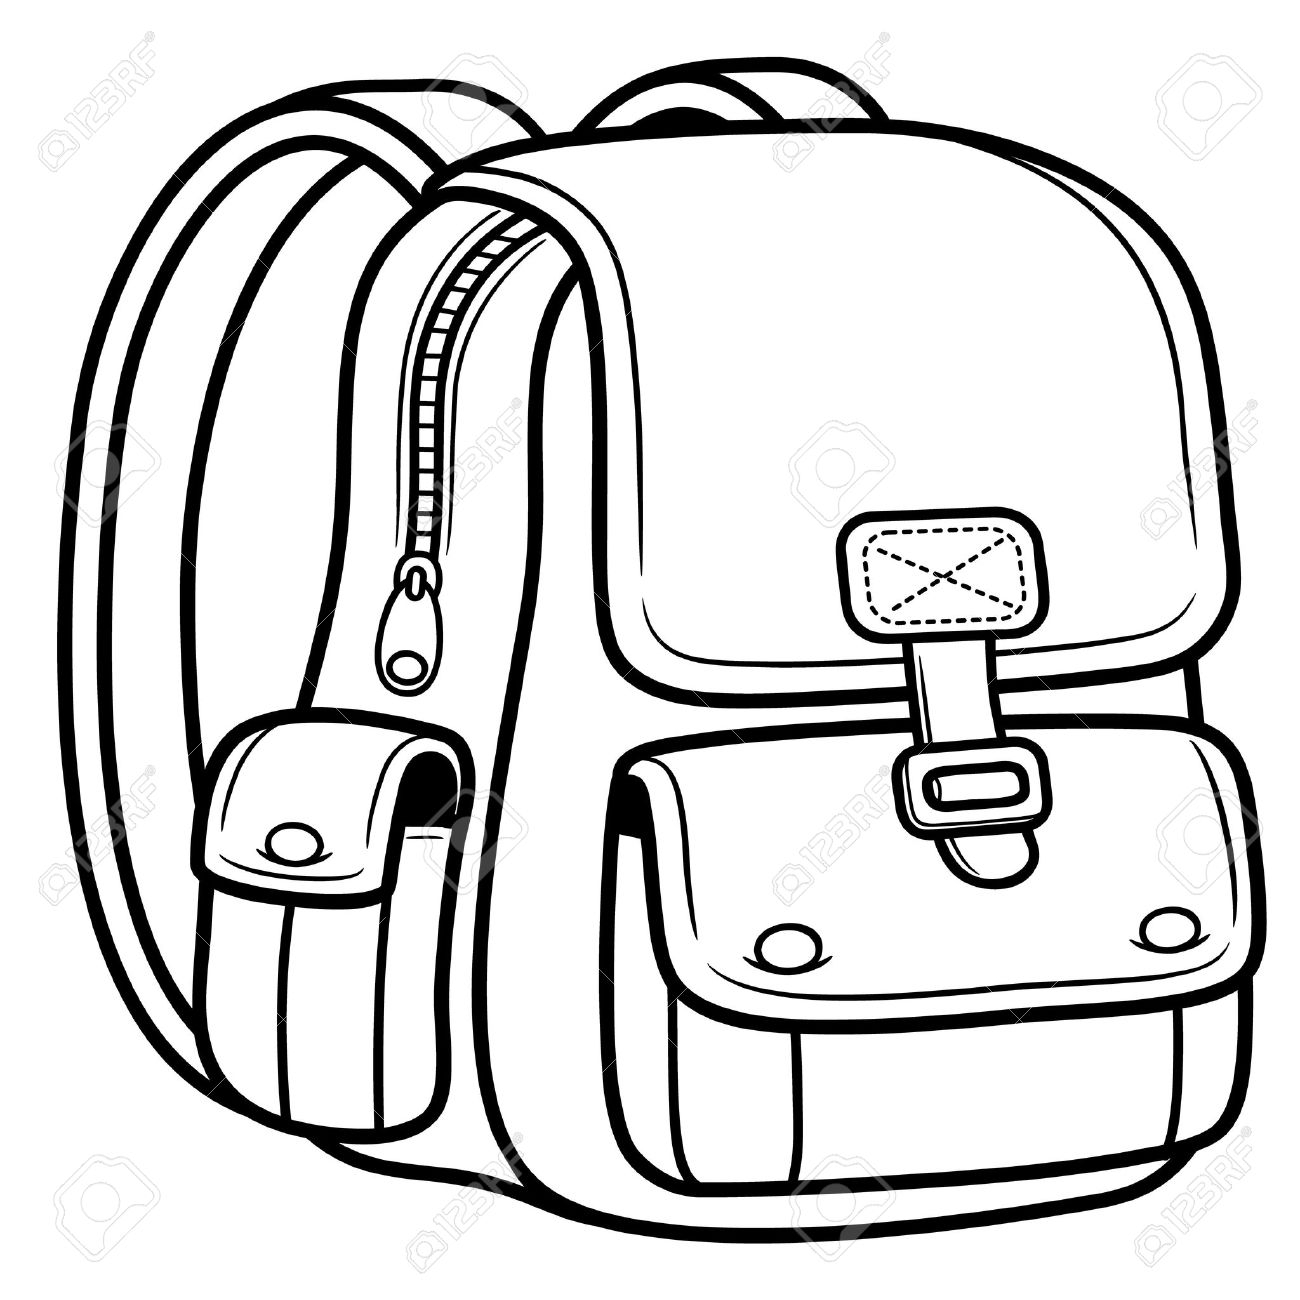 School bag clipart black and white 3 » Clipart Station.